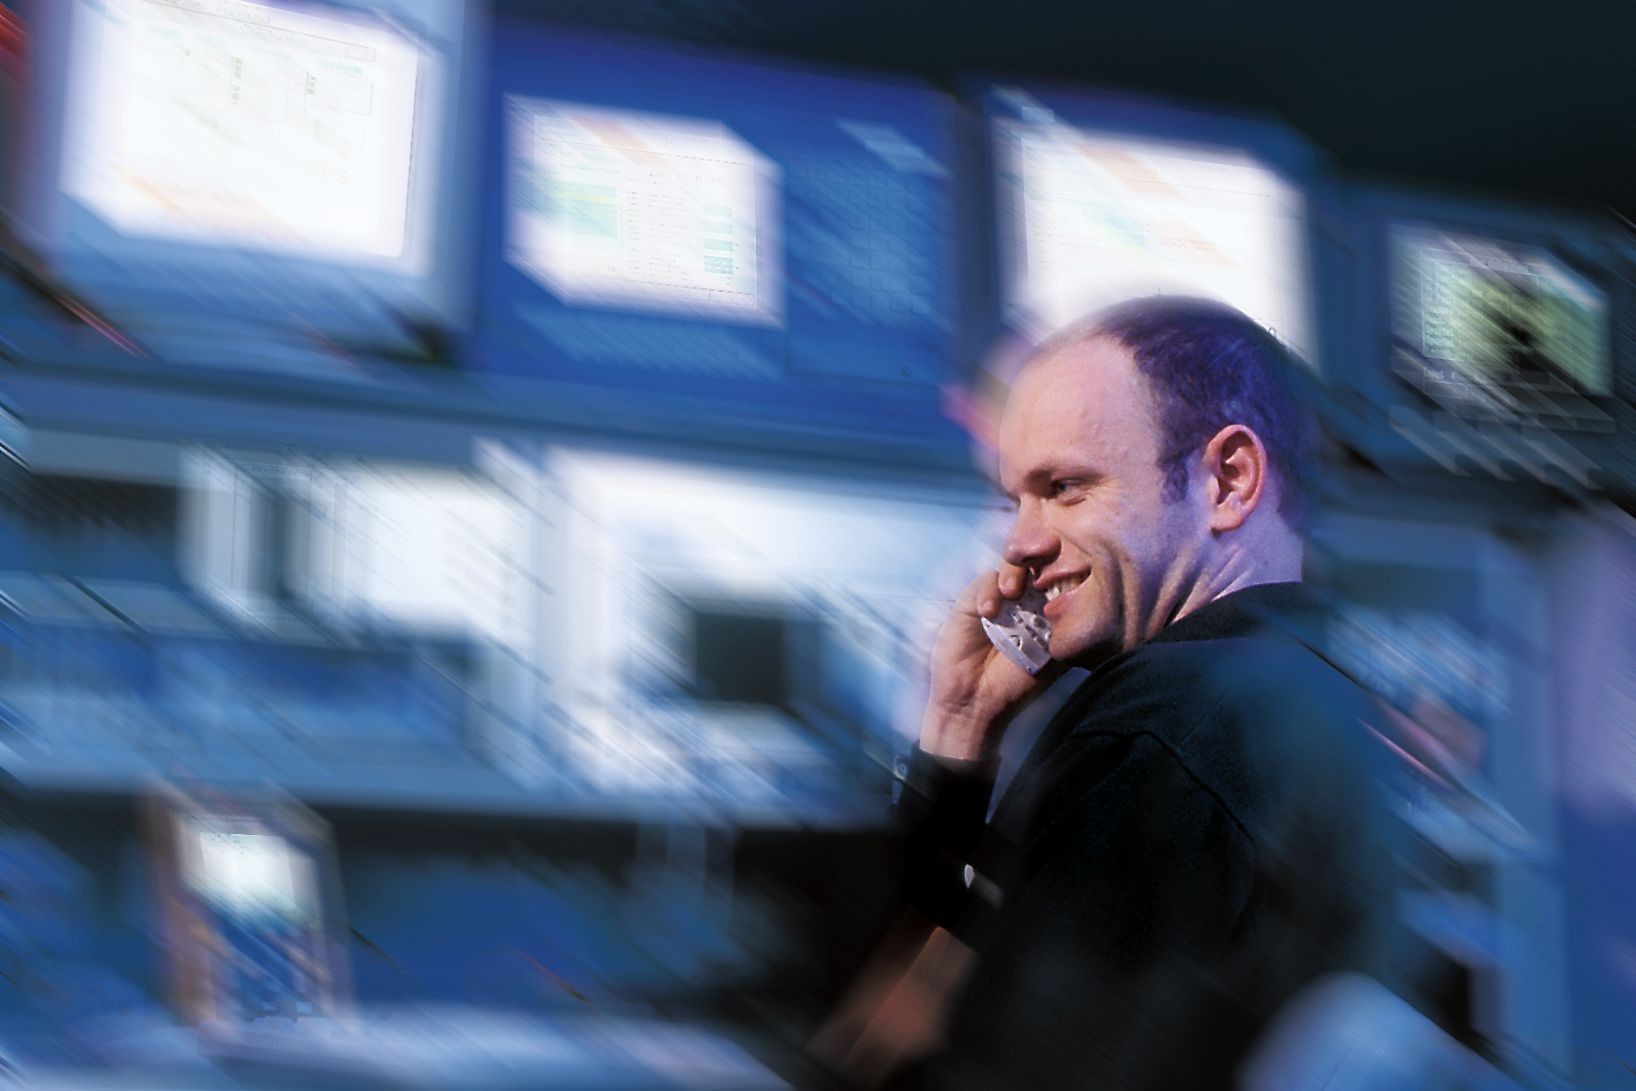 Telephoning man in front of a blurred background of monitors